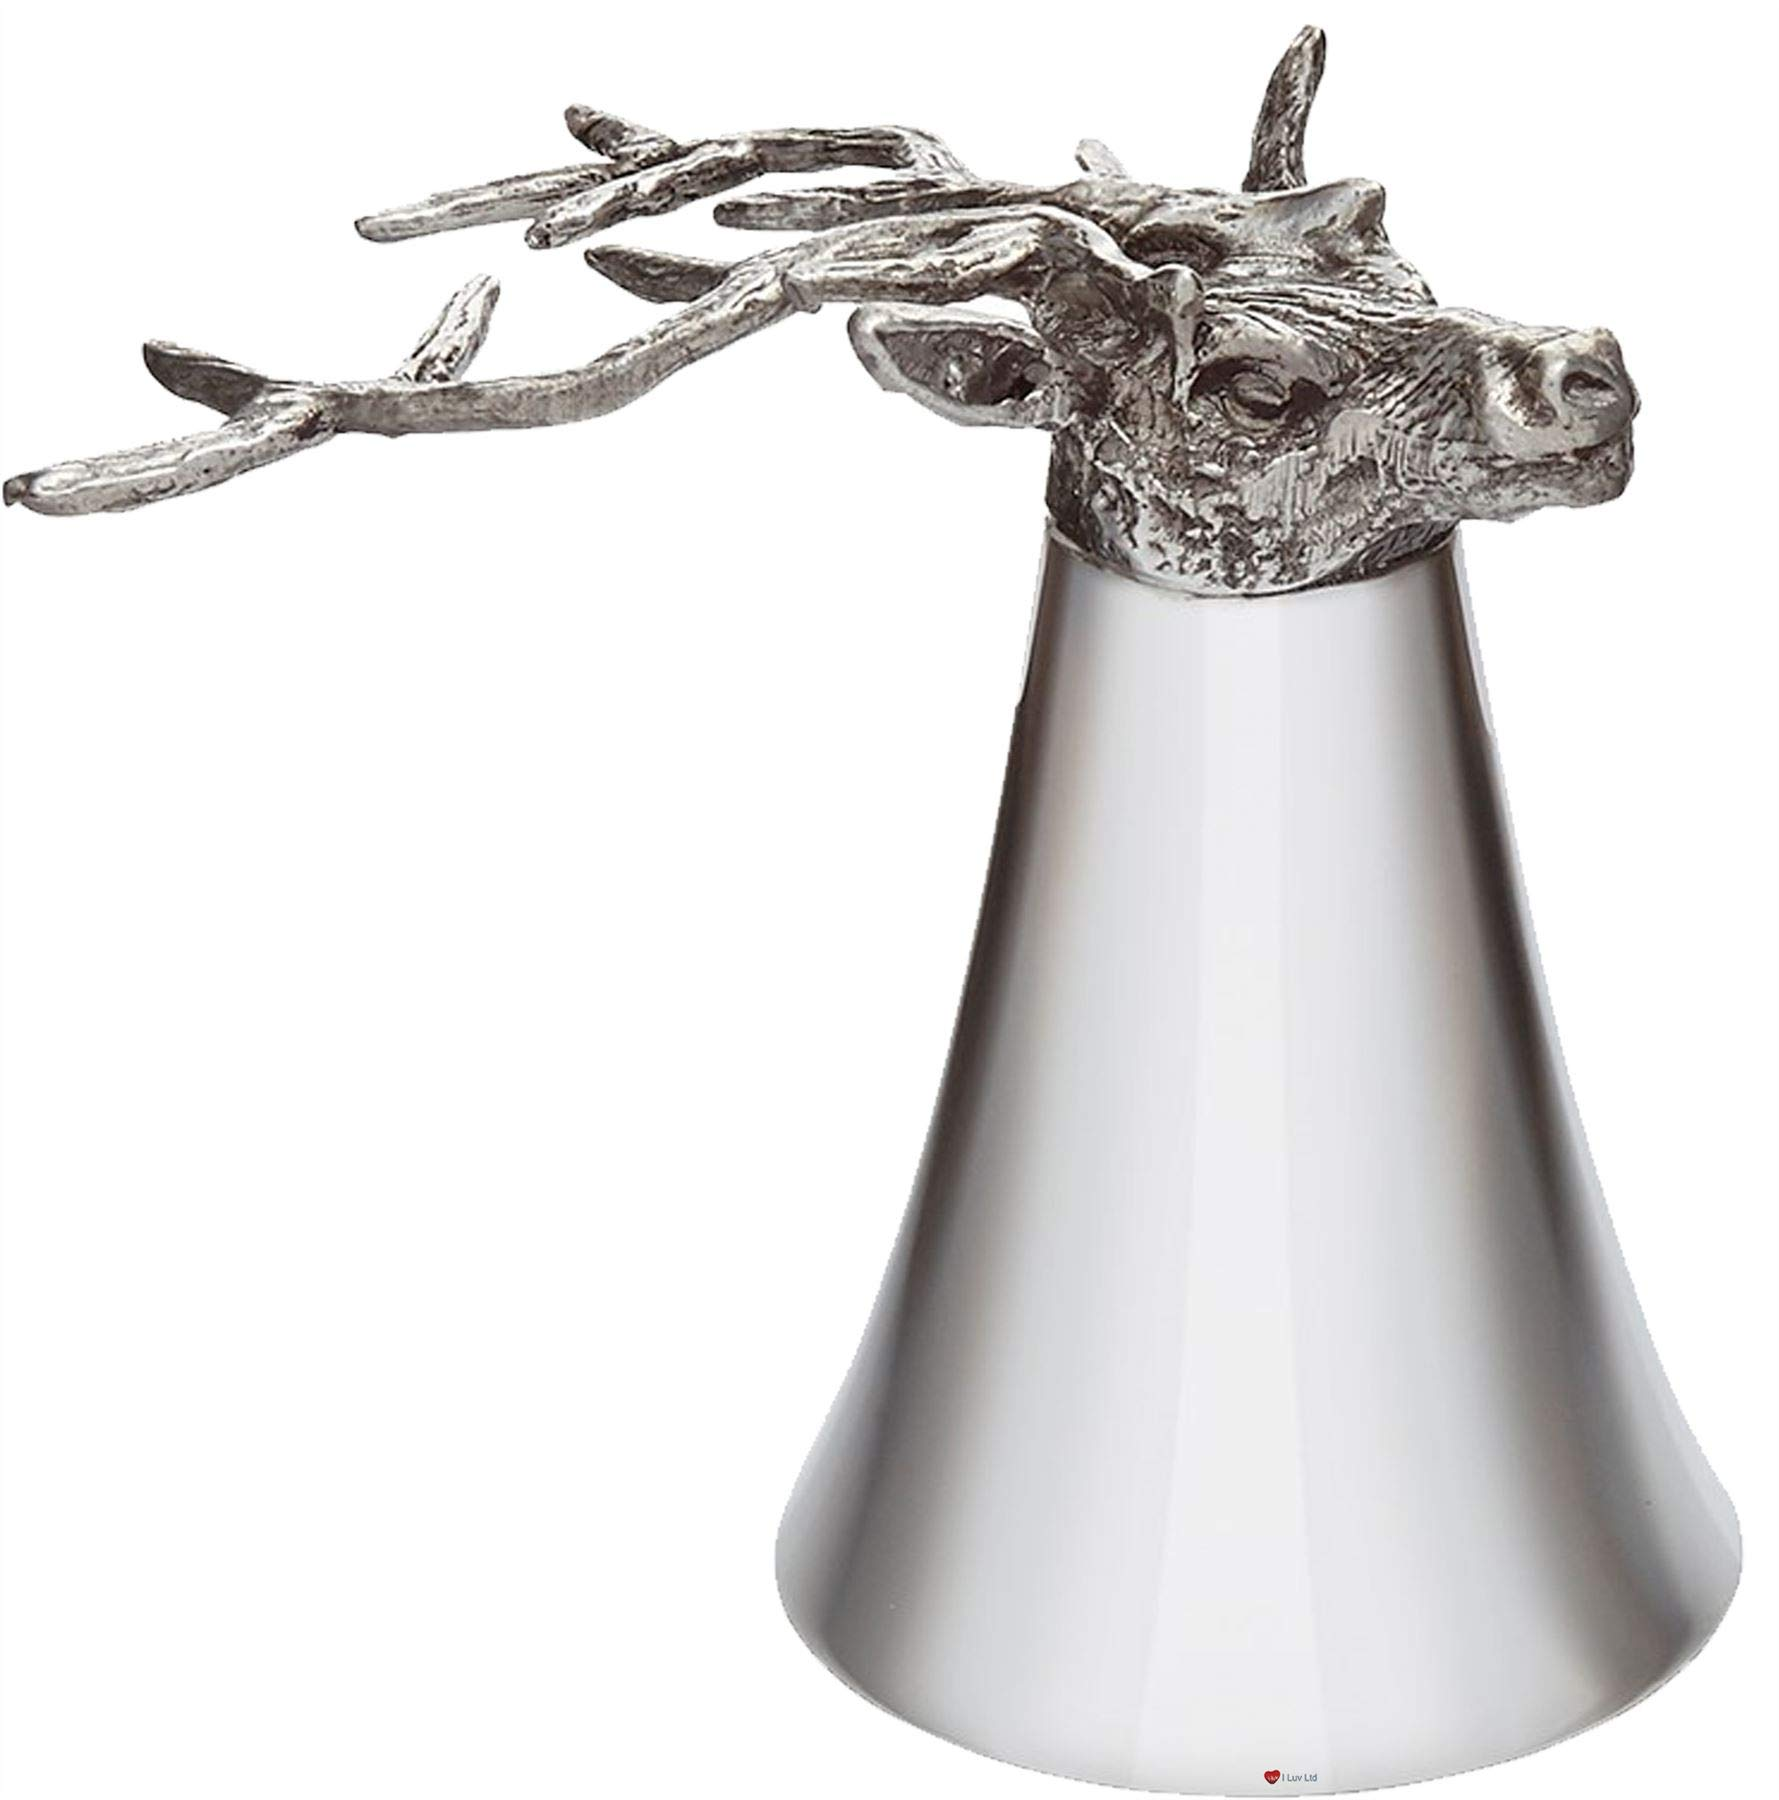 Pewter Jigger Measure or Stirrup Cup with Stag Head - 5 oz by iLuv